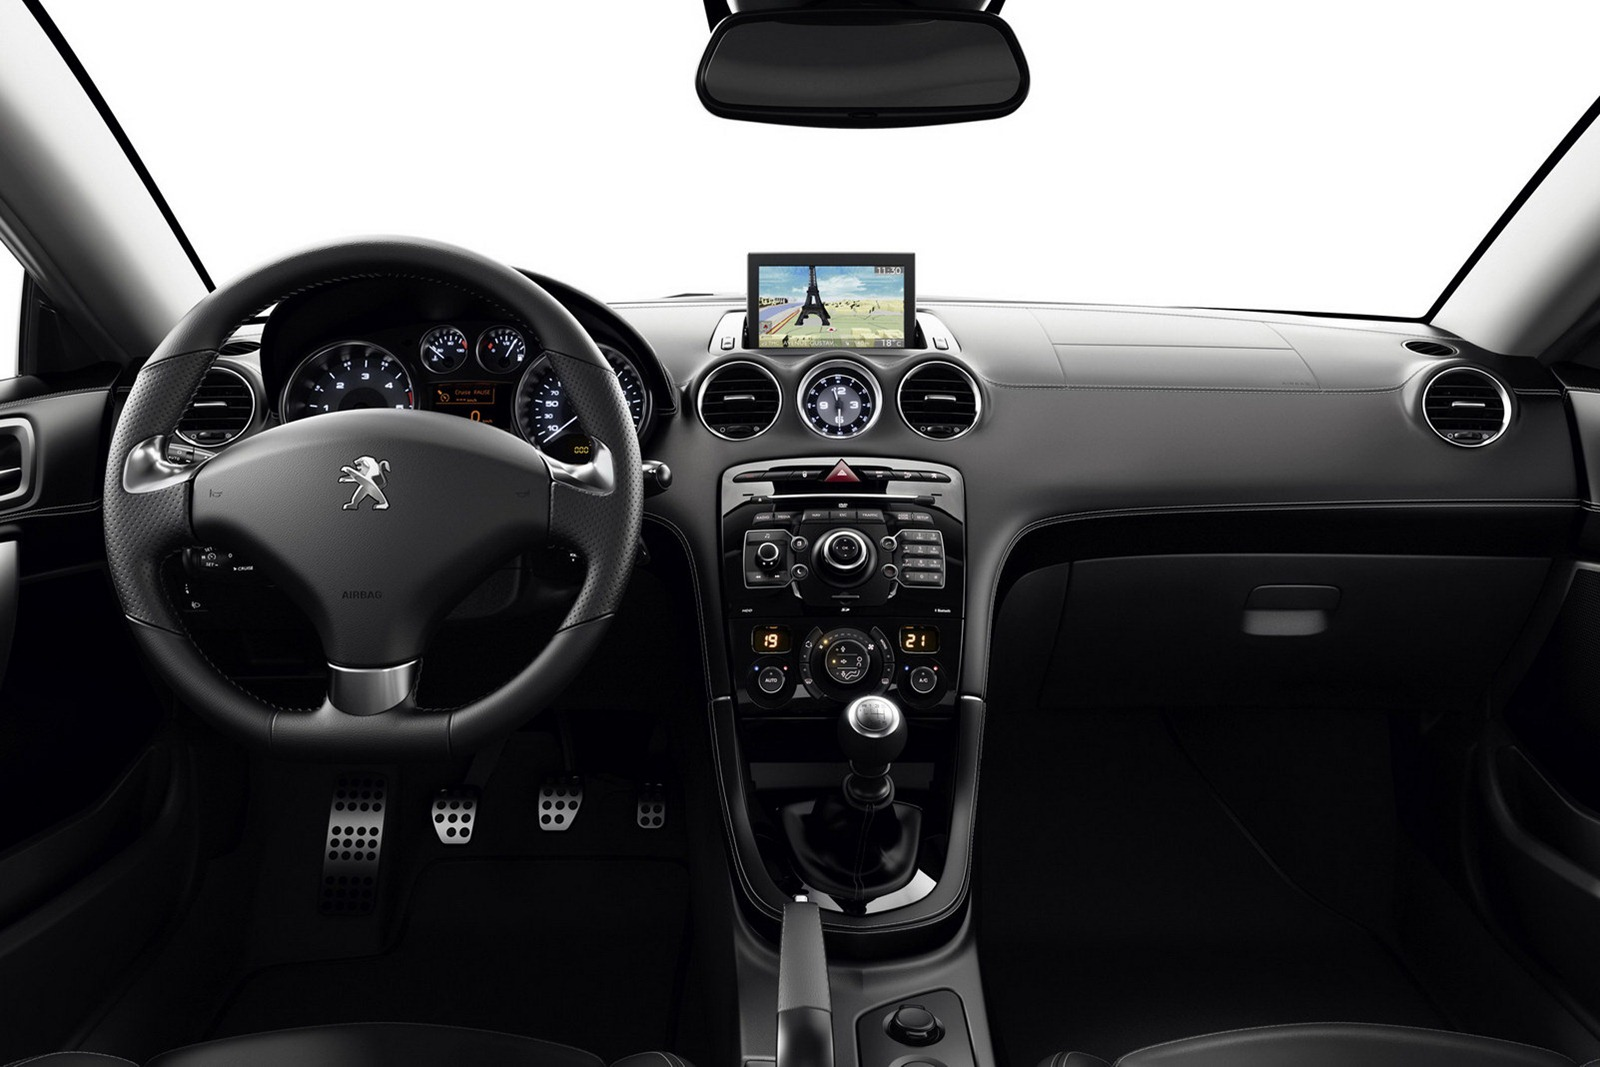 2013 peugeot rcz coupe interior. Black Bedroom Furniture Sets. Home Design Ideas